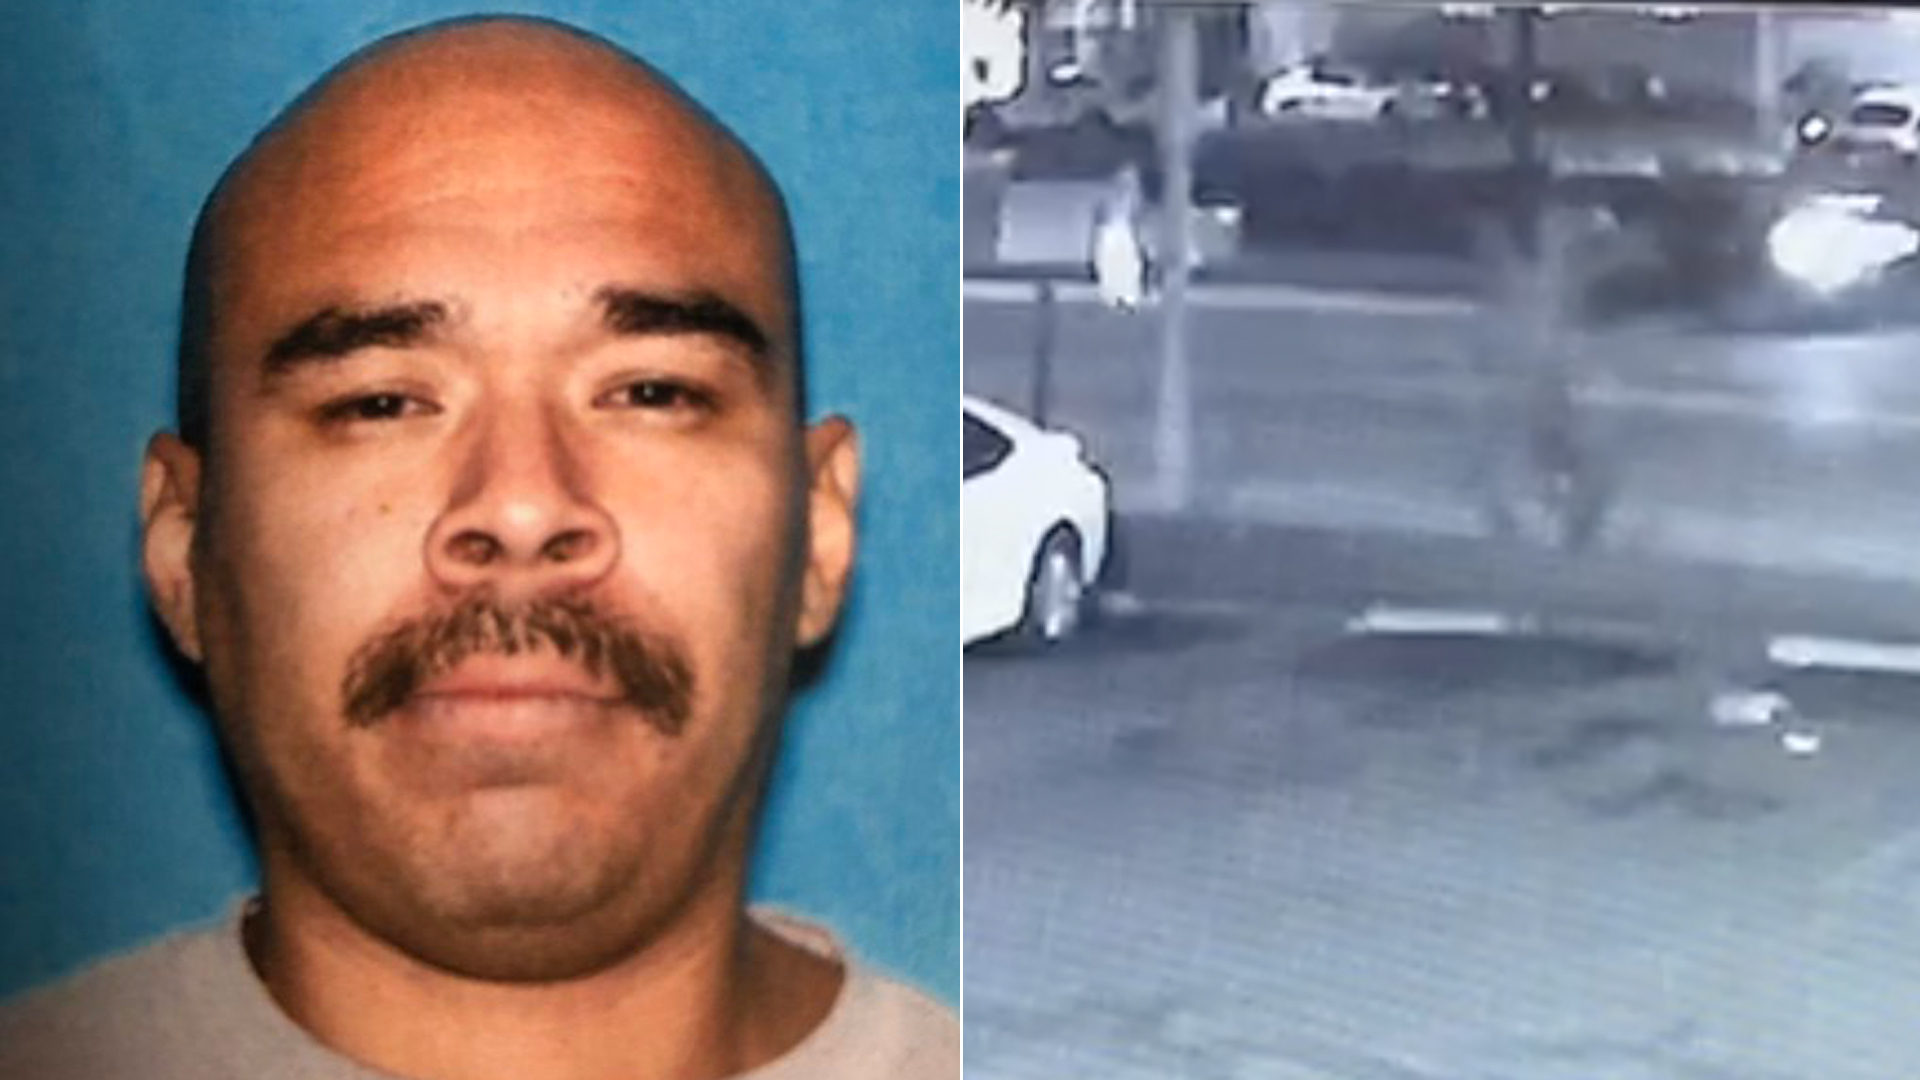 Joel Cruz appears in a photo and surveillance video released by the Los Angeles Police Department in December 2019.